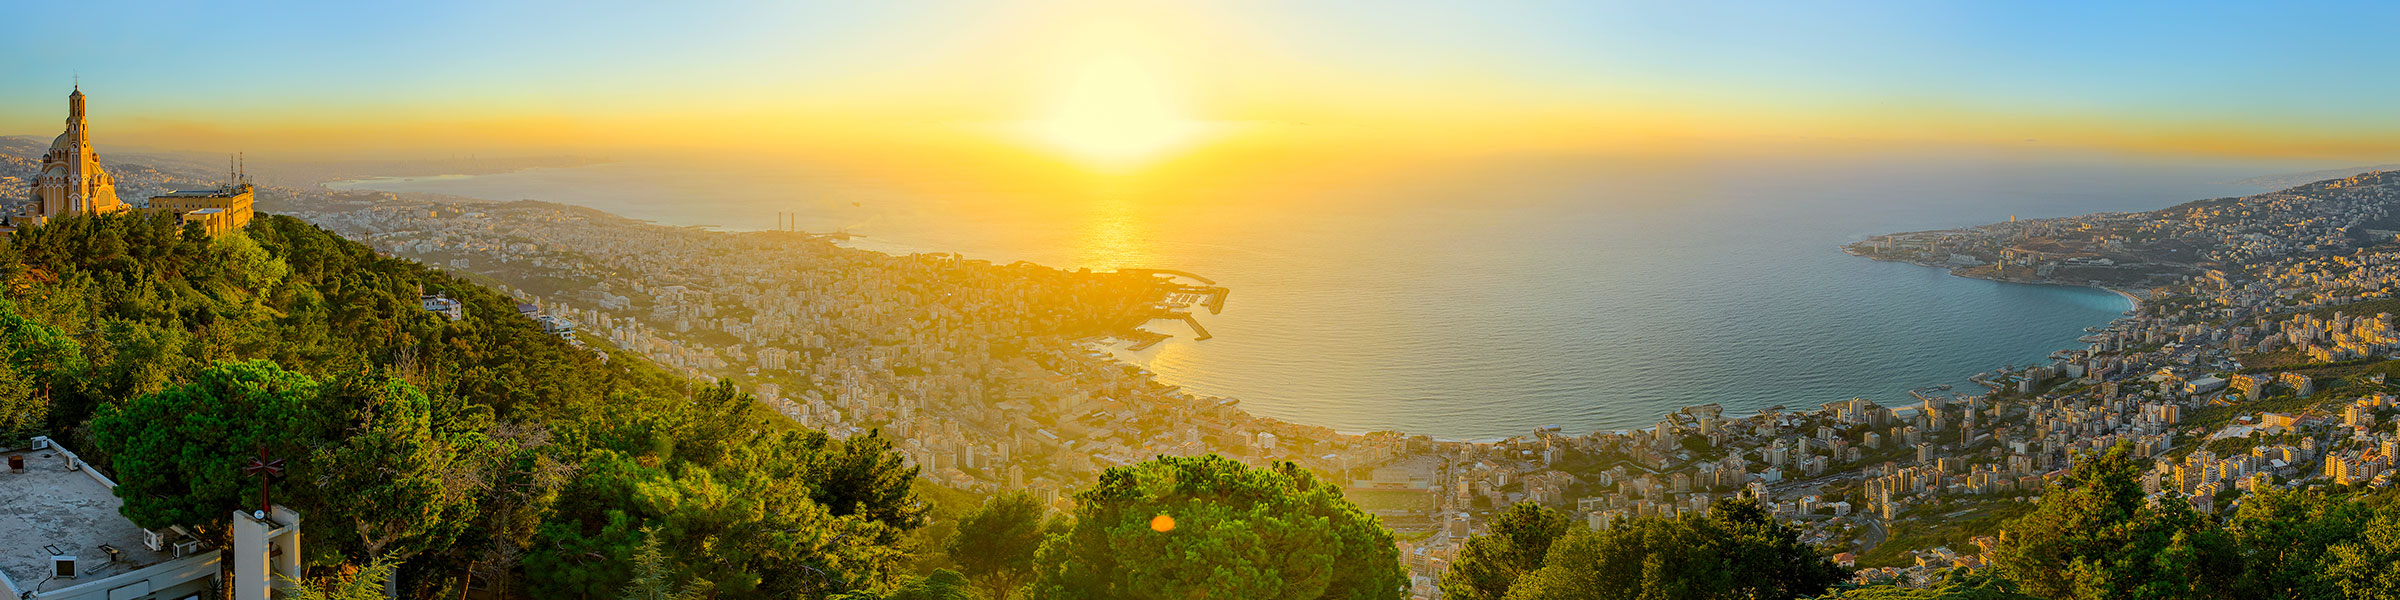 Sunset panorama from Lady of Lebanon monument